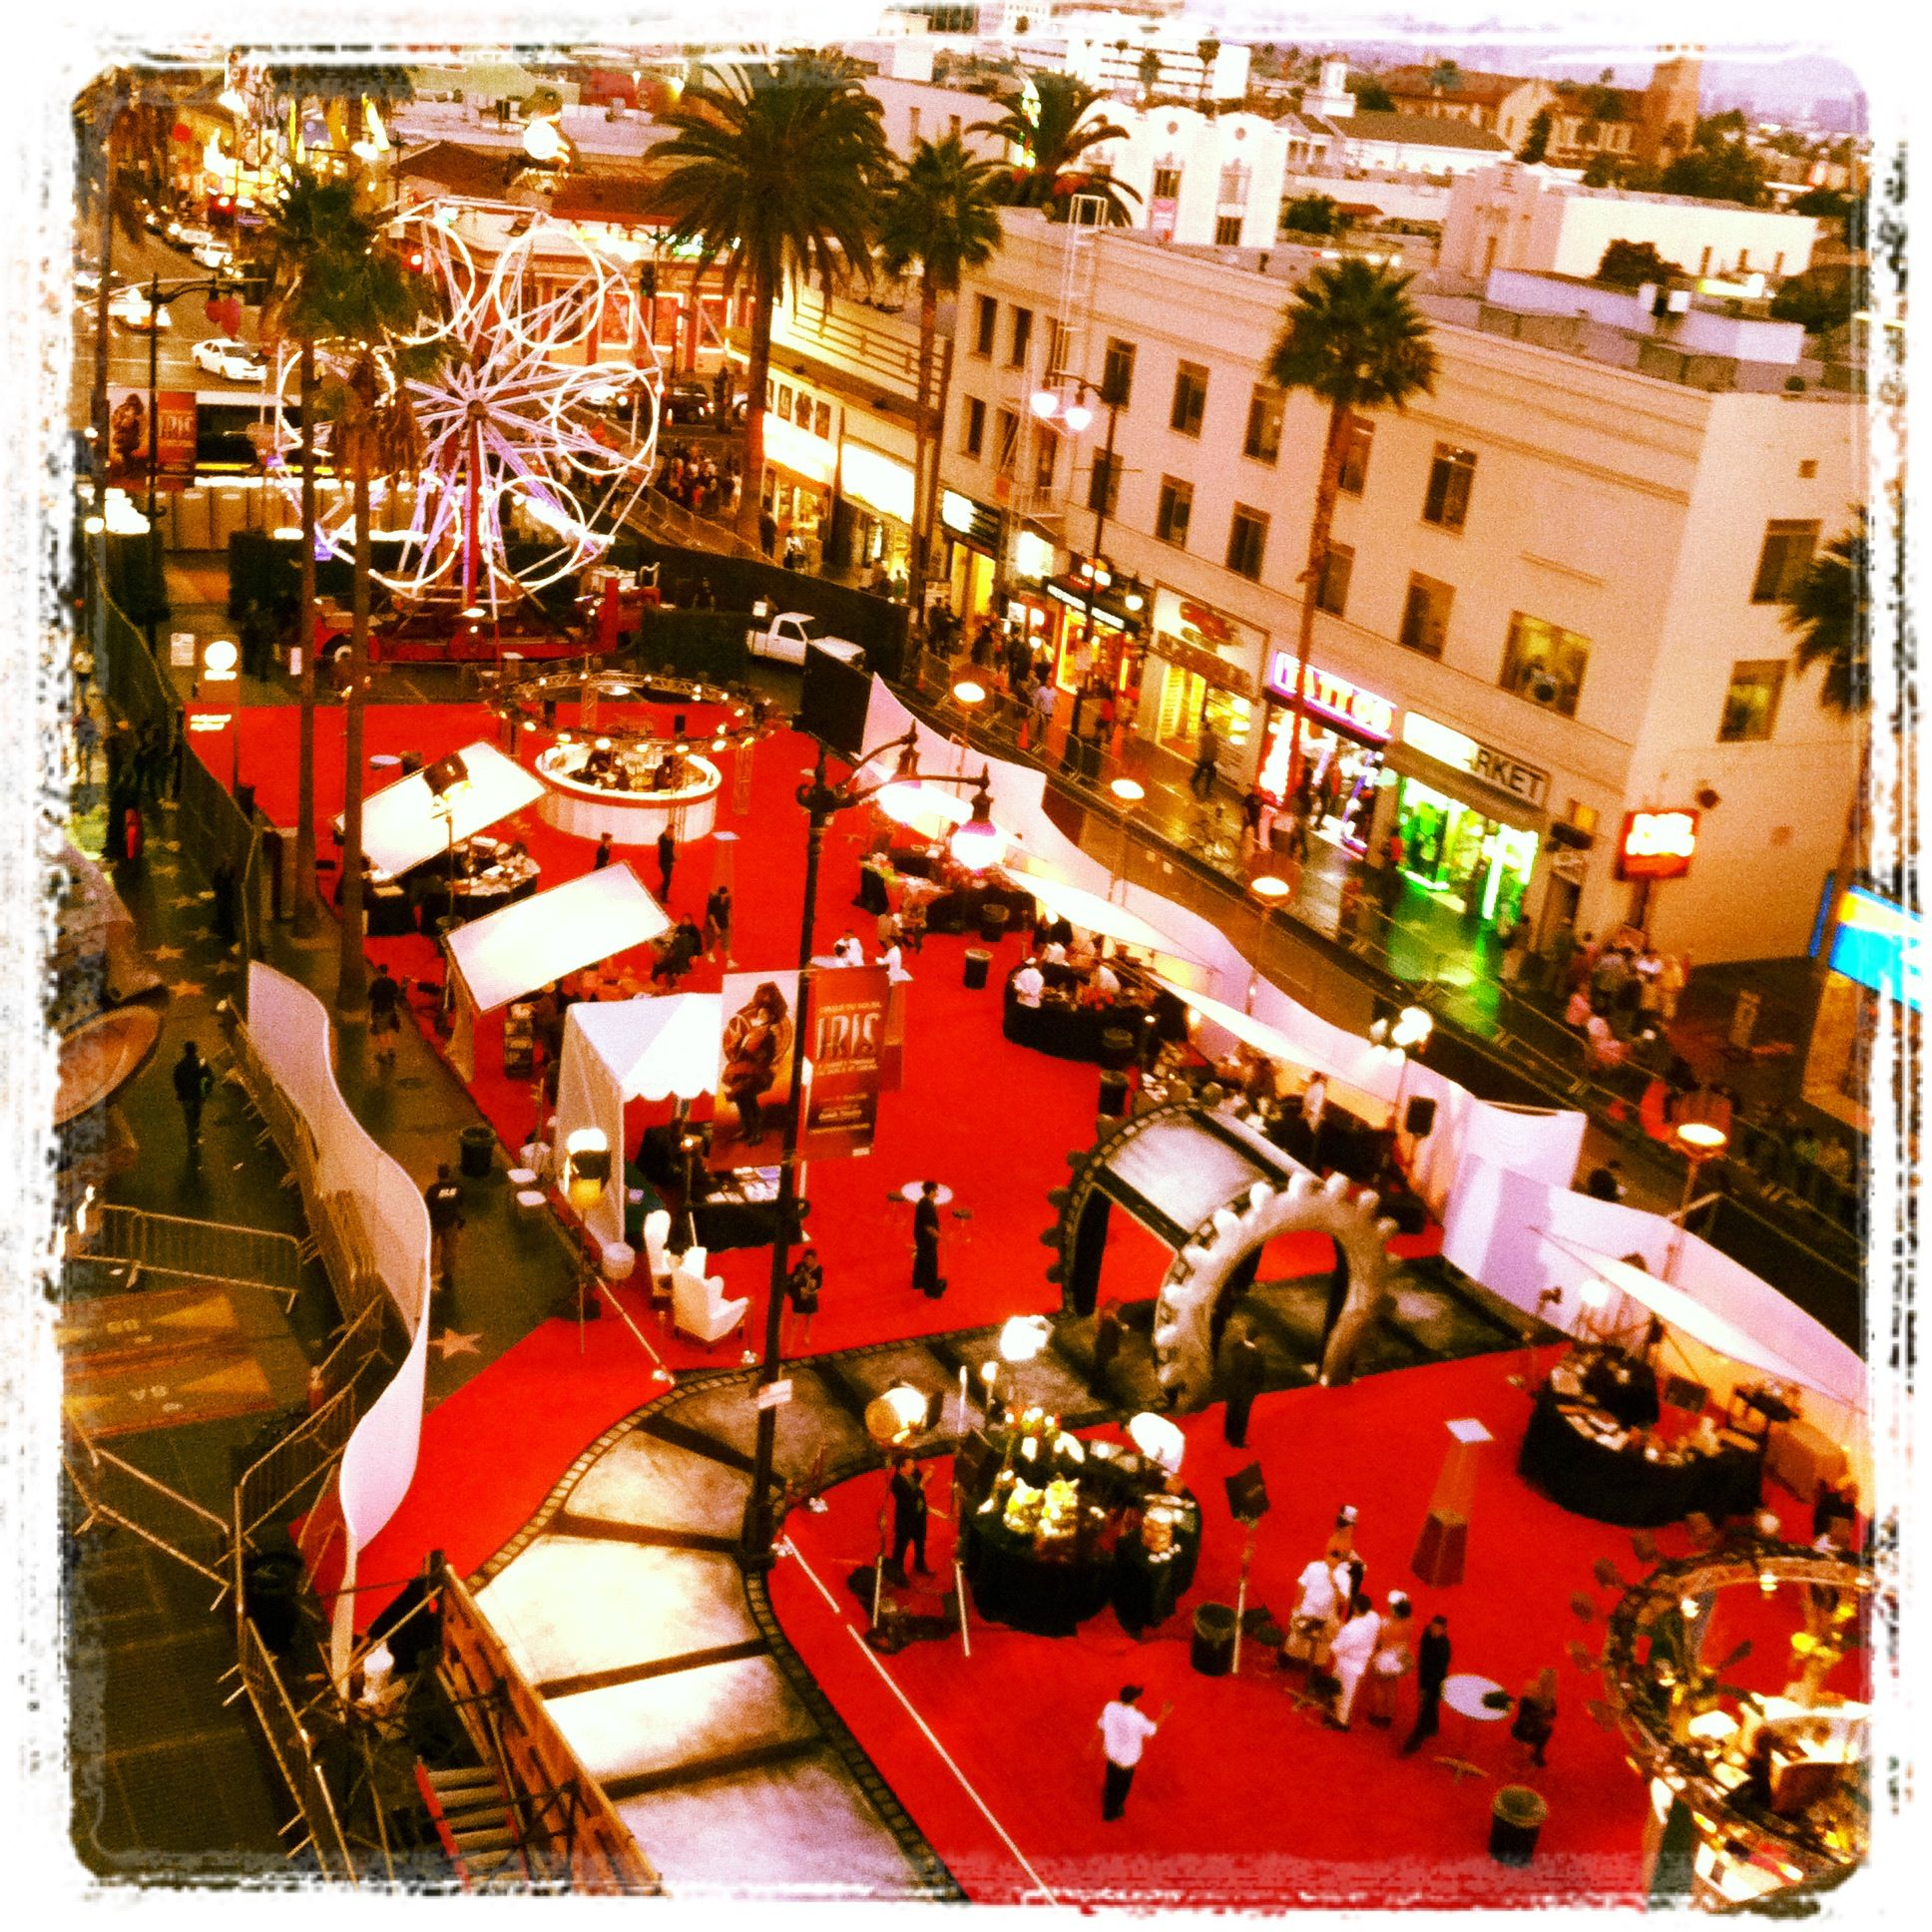 view from the top for the world premiere of Cirque's gala for Iris